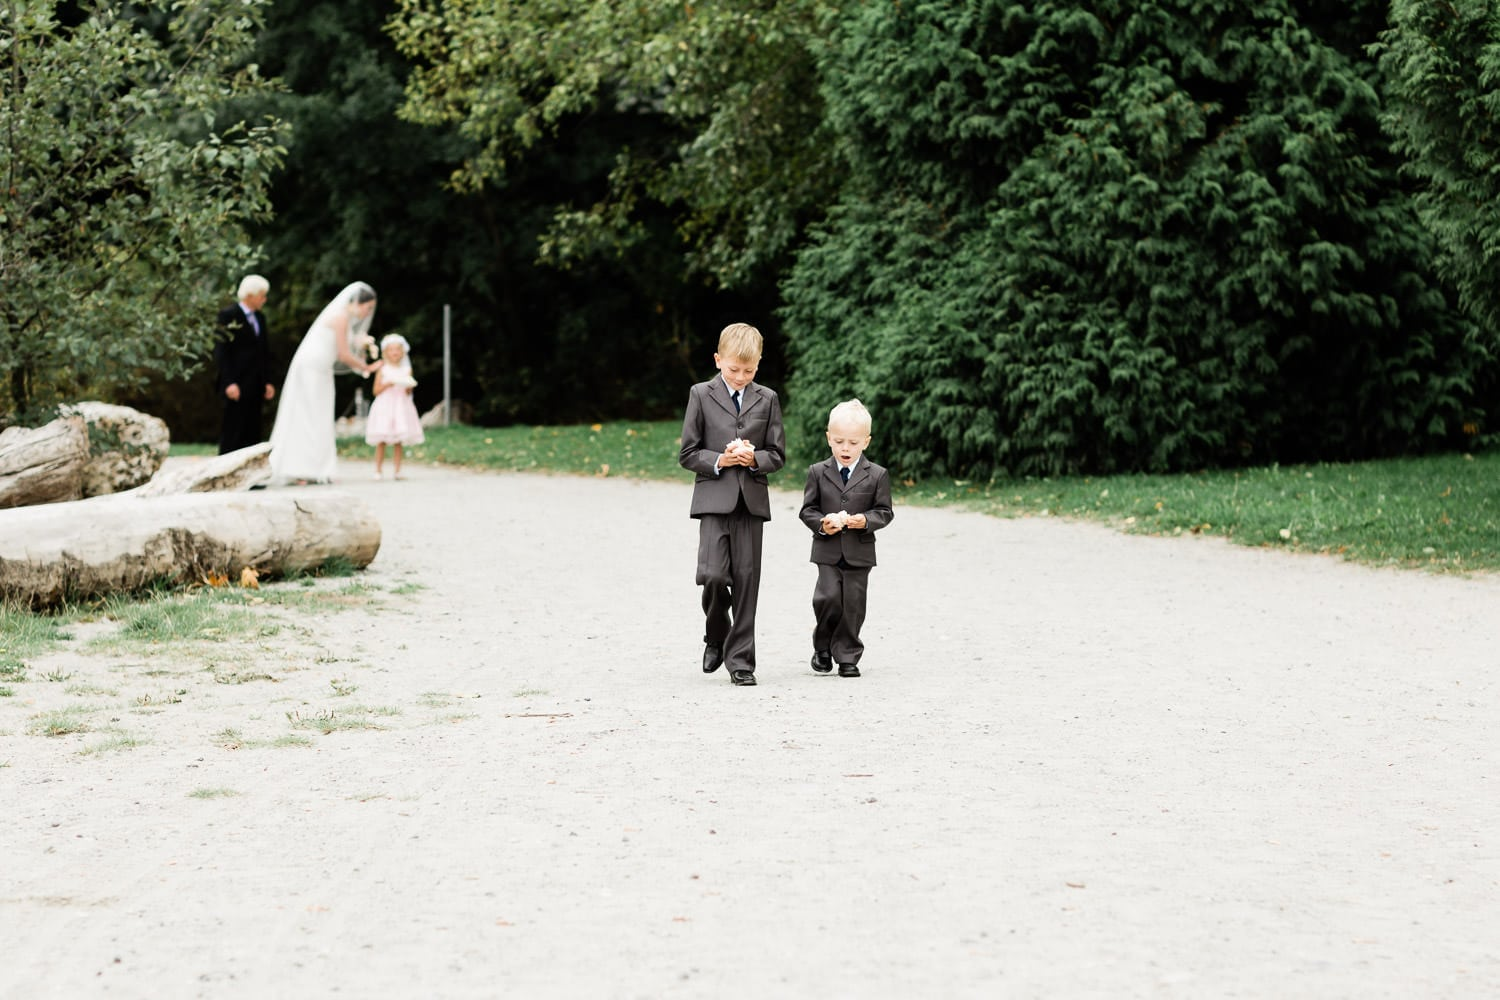 Ring bearer boys, Wedding ceremony on Spanish banks | Vancouver wedding photographer